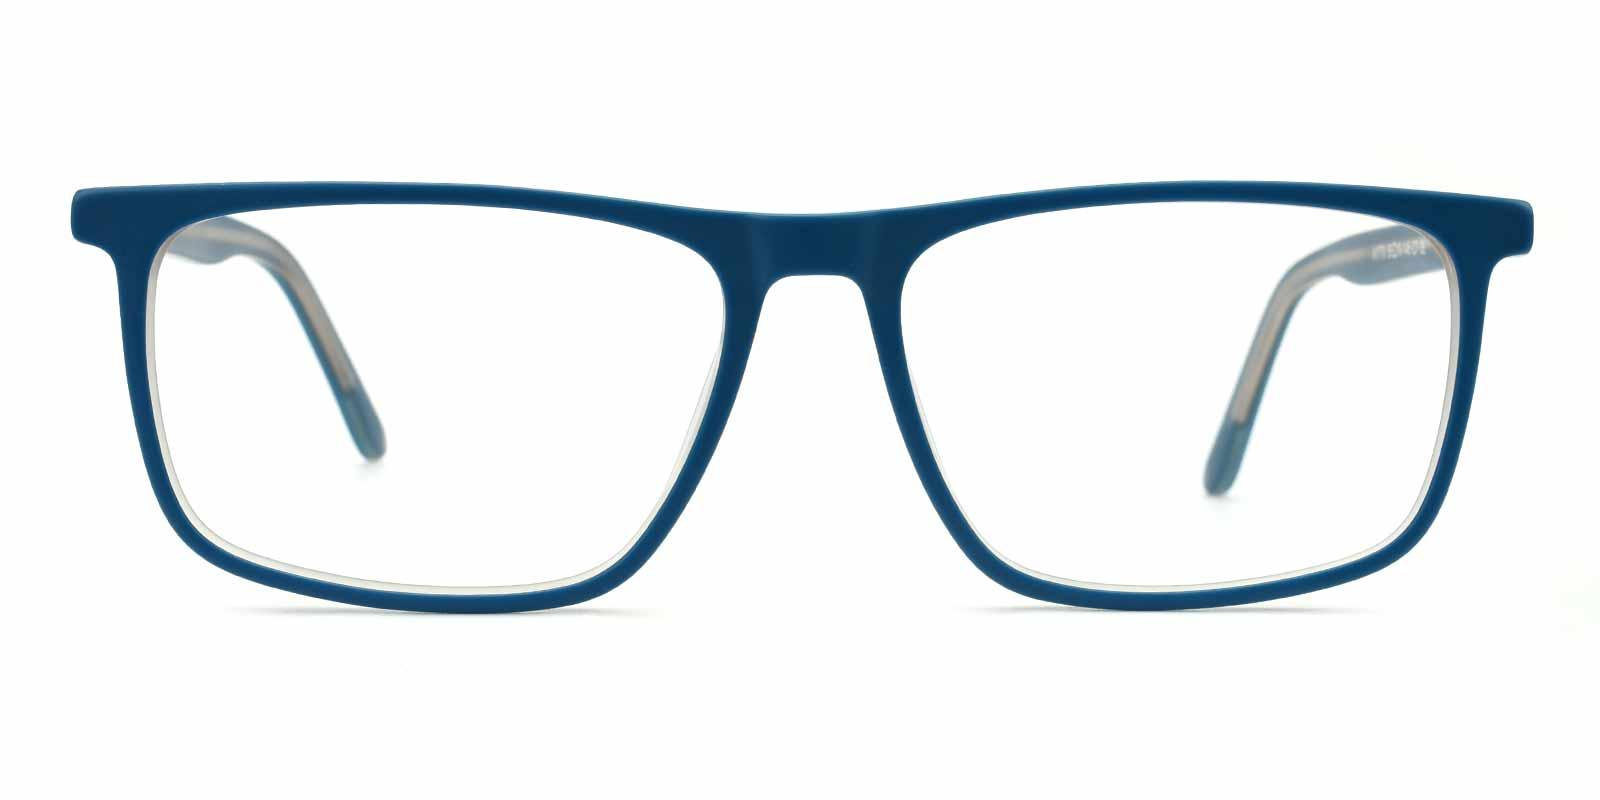 Barbar-Blue-Rectangle-Acetate-Eyeglasses-additional2